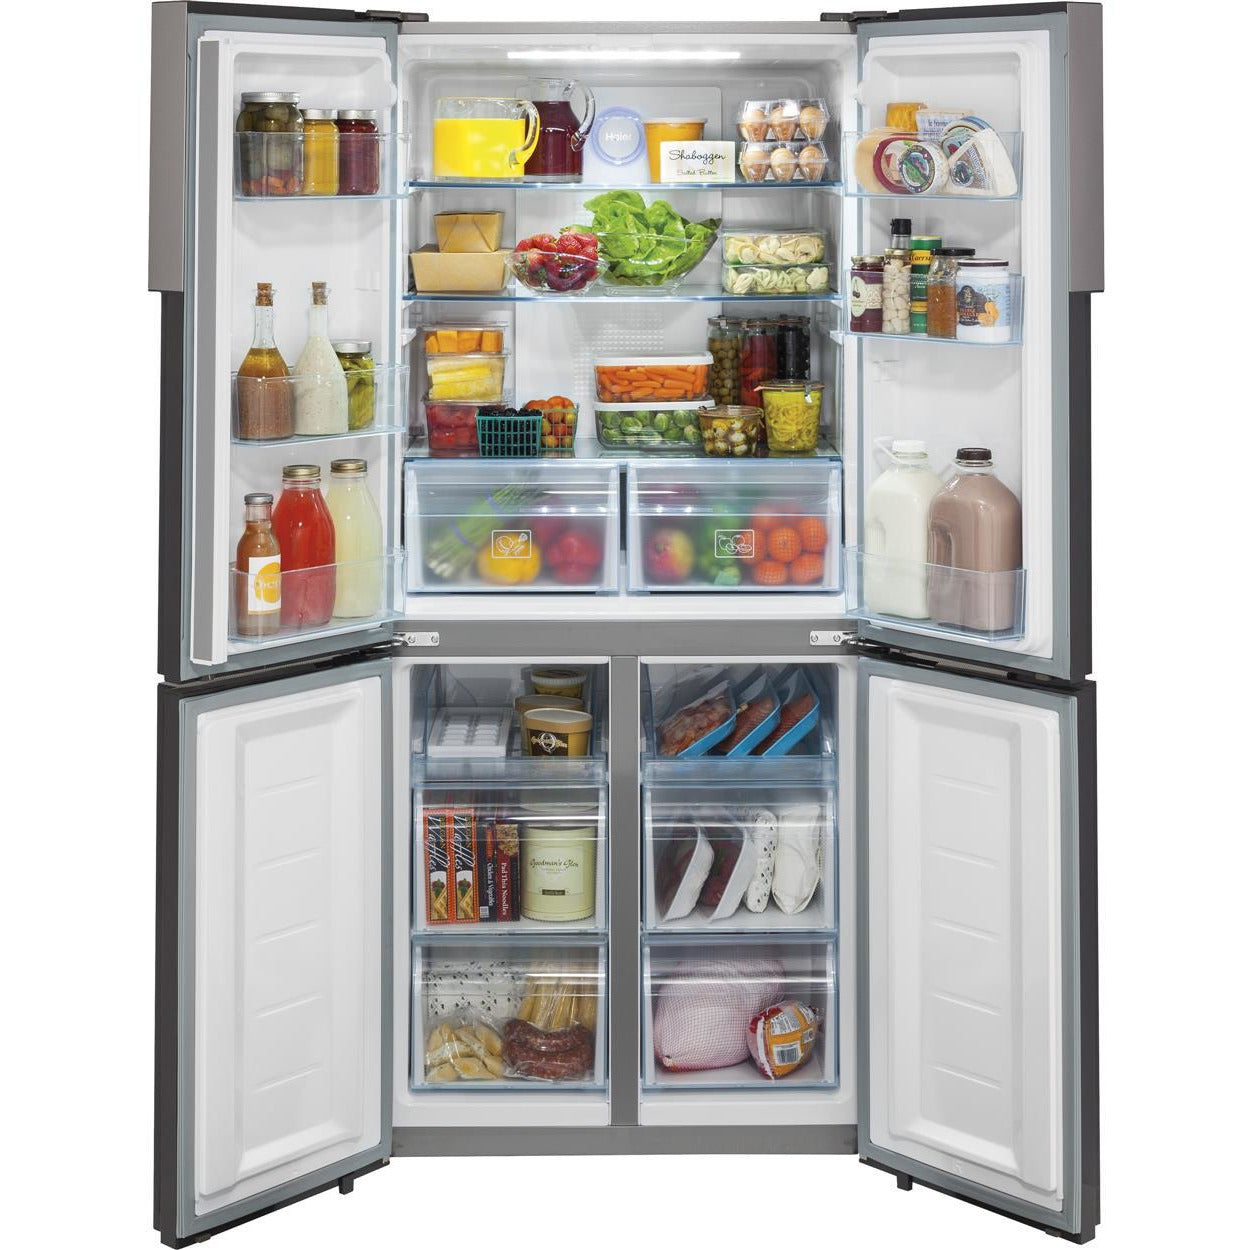 16.7 Cu. Ft. Quad Door Refrigerator - Casa Muebles